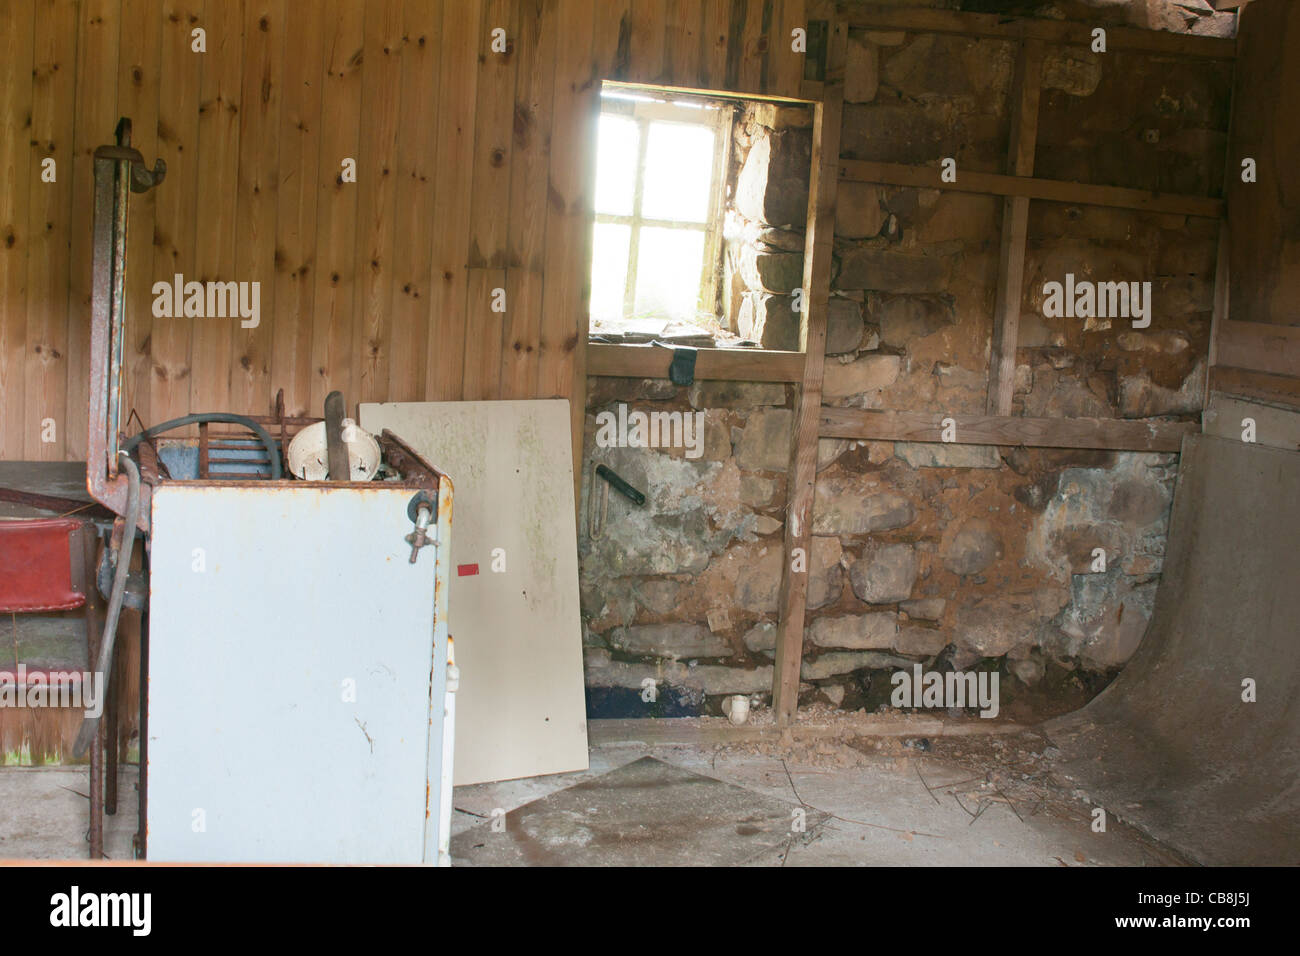 Building, Croft House, Abandoned, Ruin, Interior - Stock Image